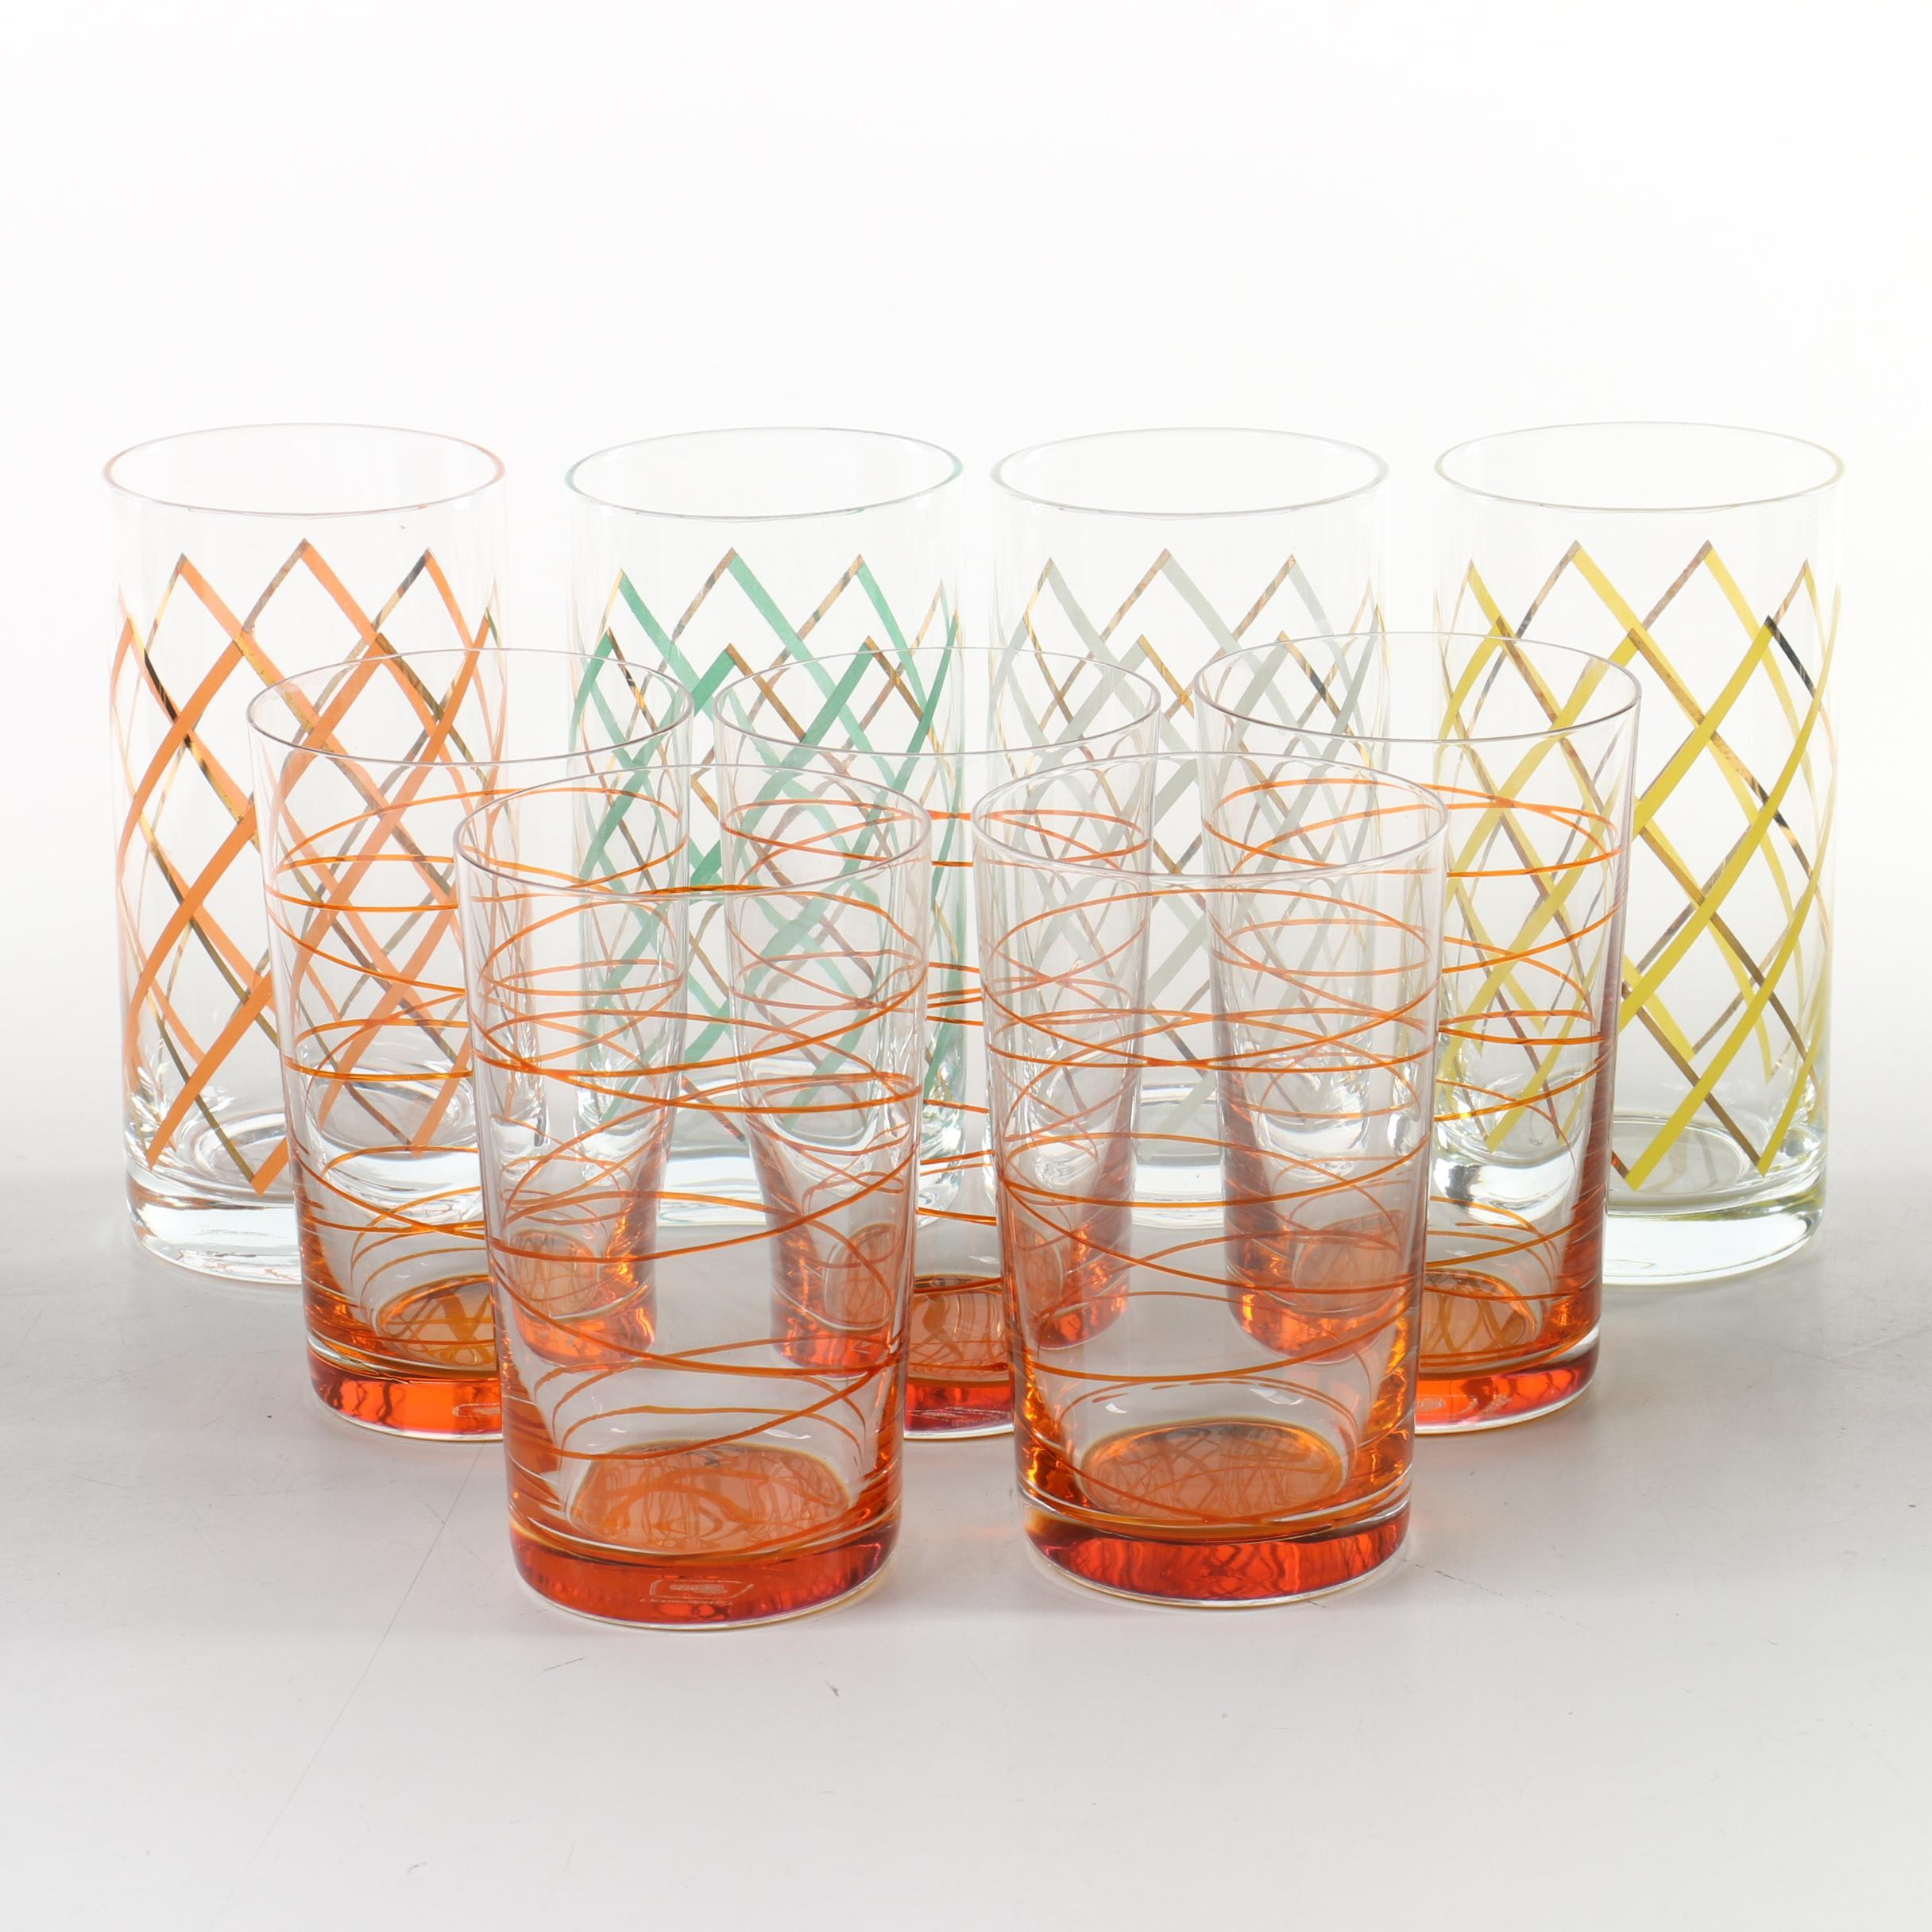 Drinking Glasses with Colorful Patterns